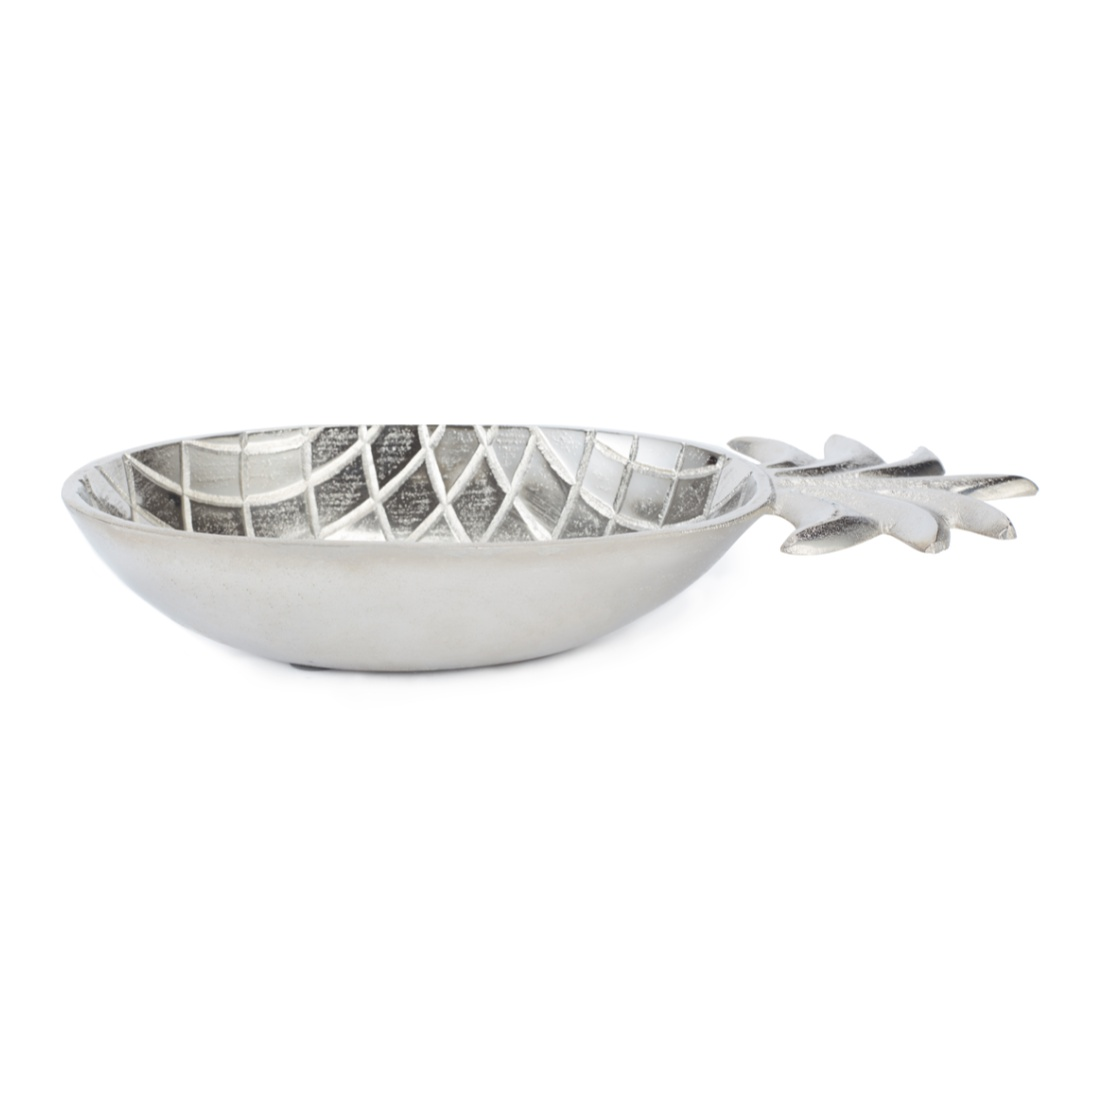 Aspen Pineapple Plater Large Glass Table D in Silver Colour by Living Essence